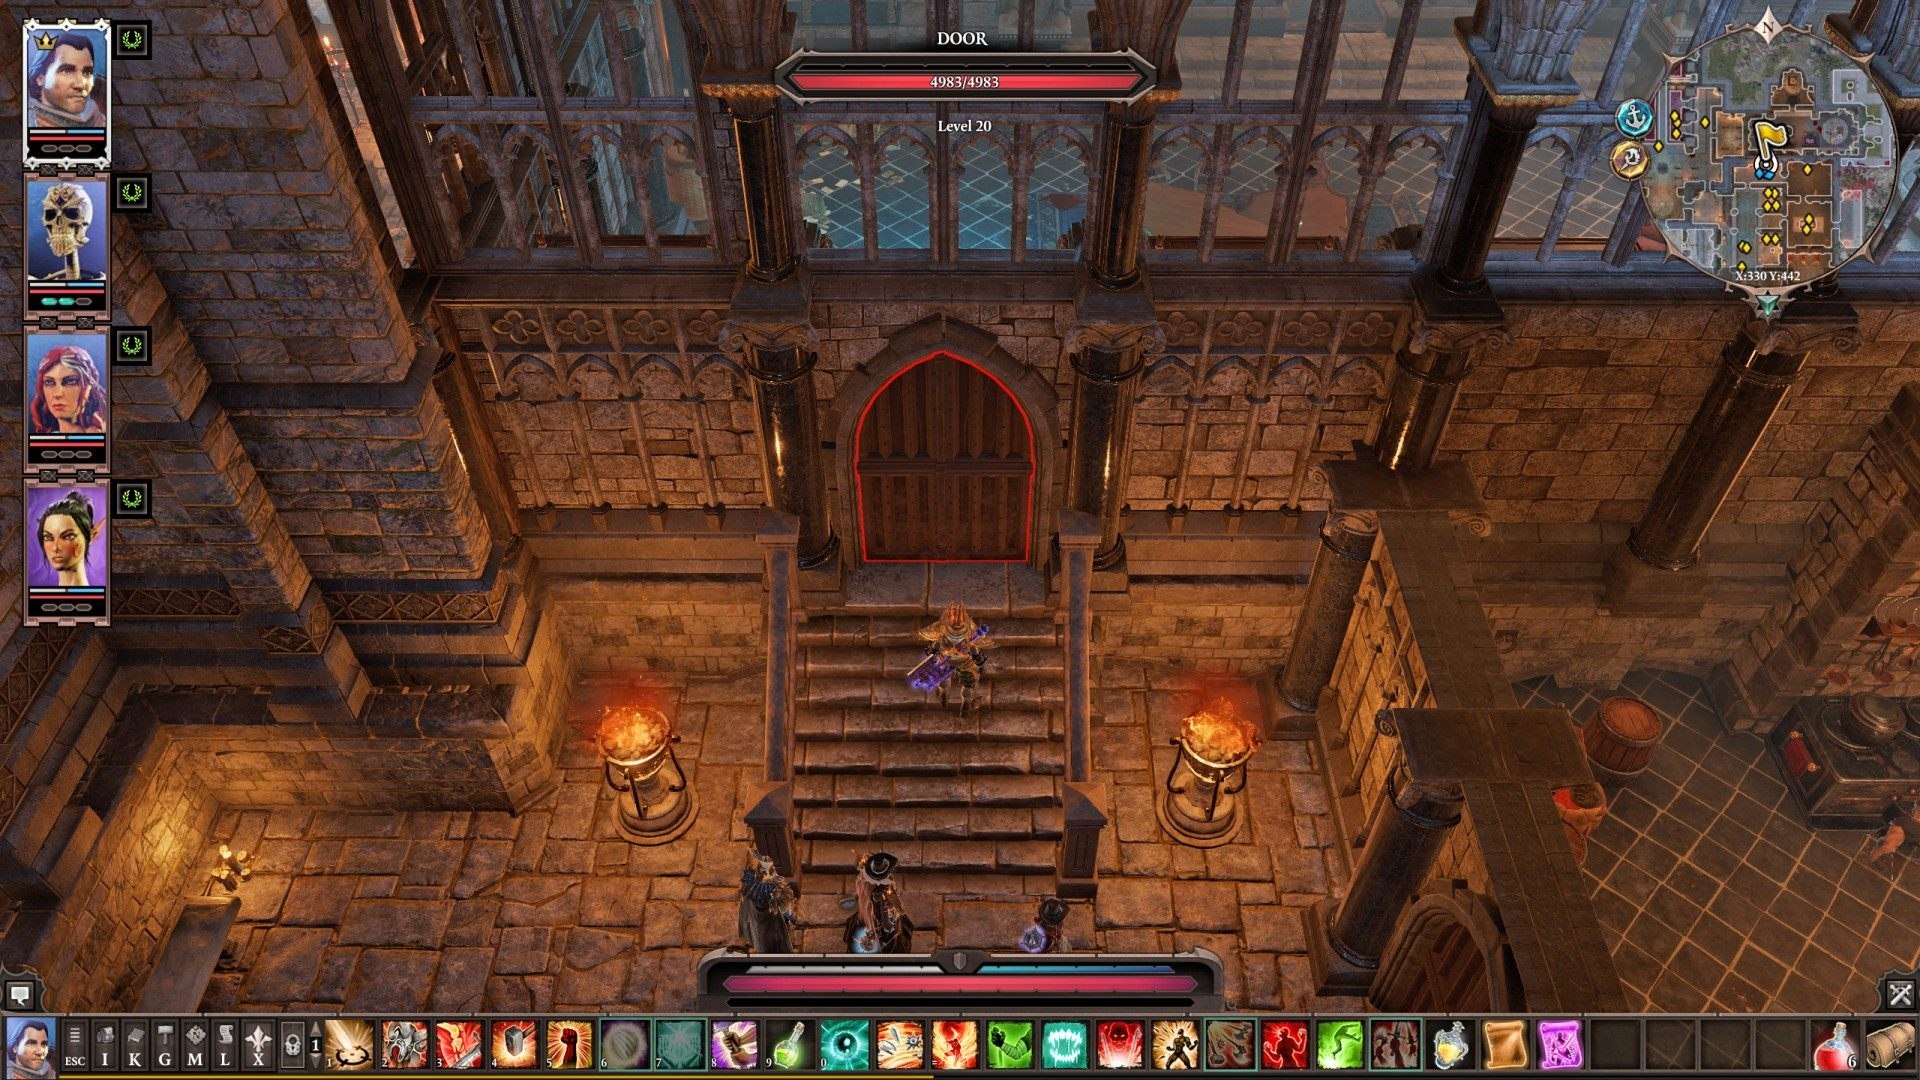 Locked Passages, Arx, Divinity: Original Sin 2 Points of